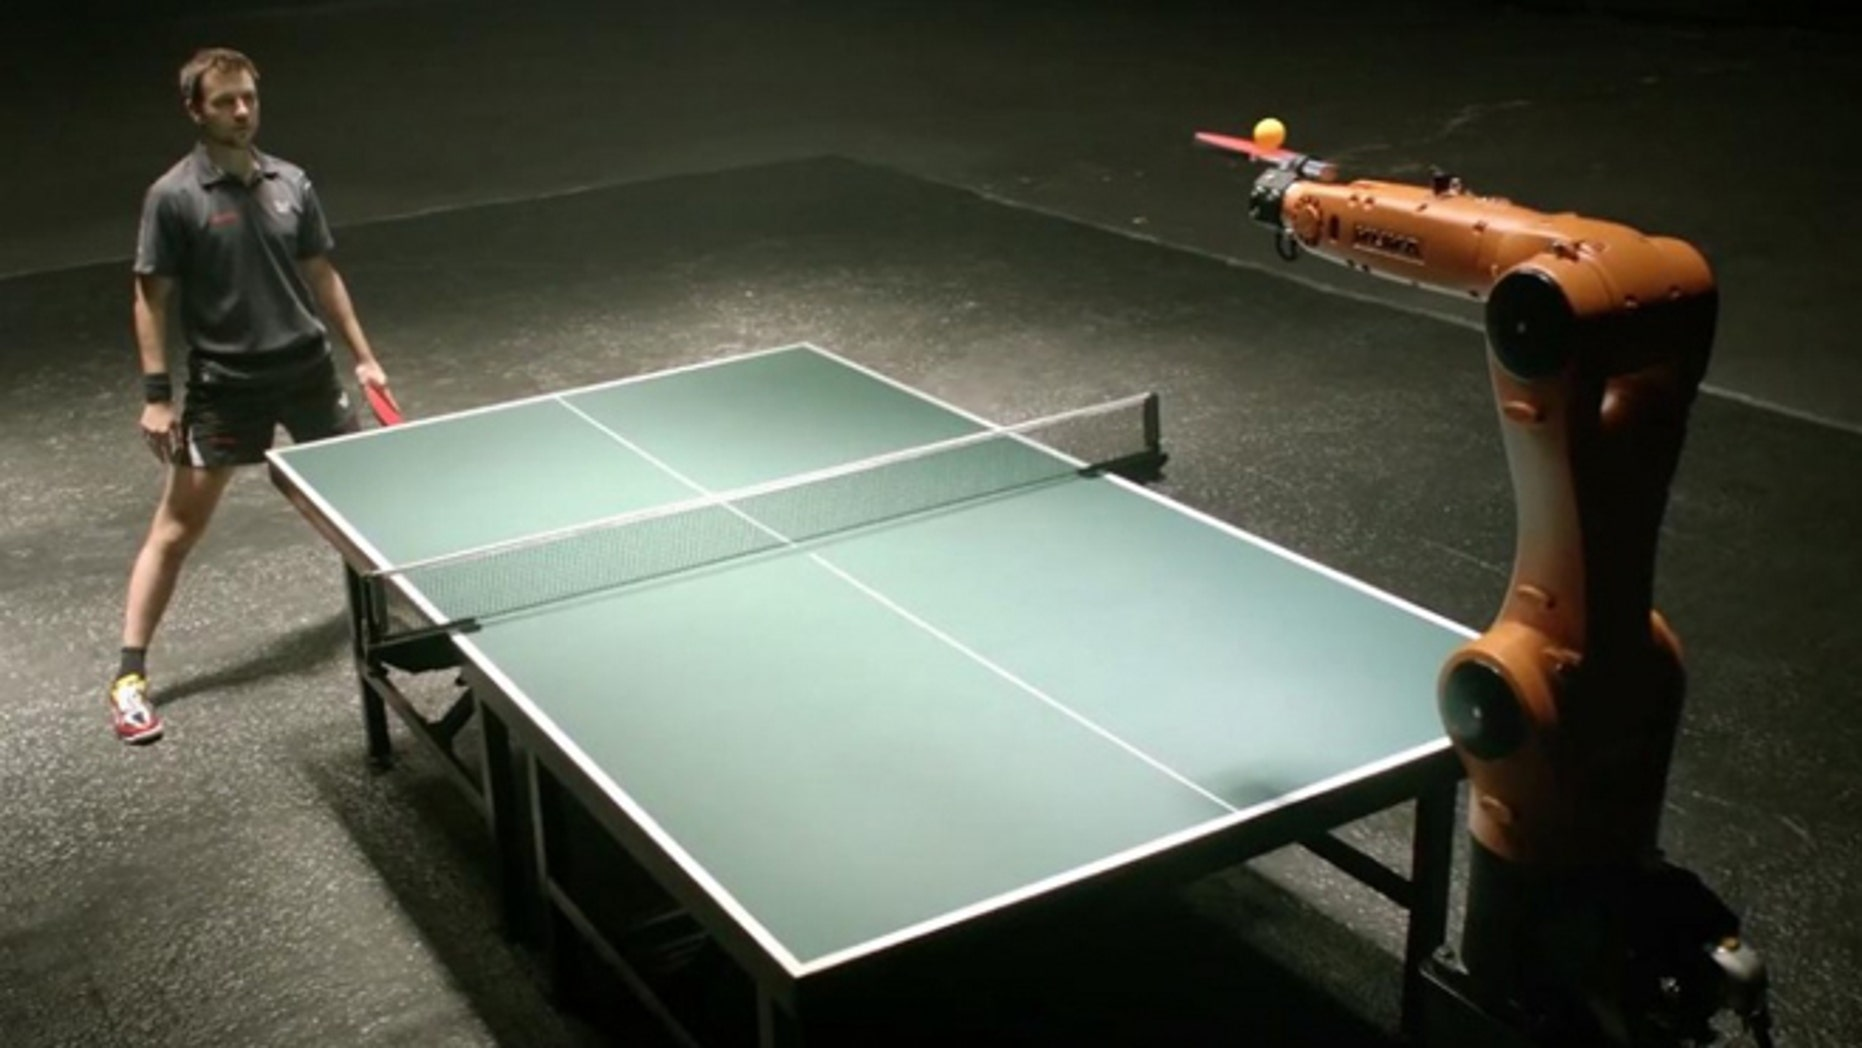 Agilus the robot has balls  albeit of the Ping-Pong variety  as next month it will go up against German table tennis pro Timo Boll.